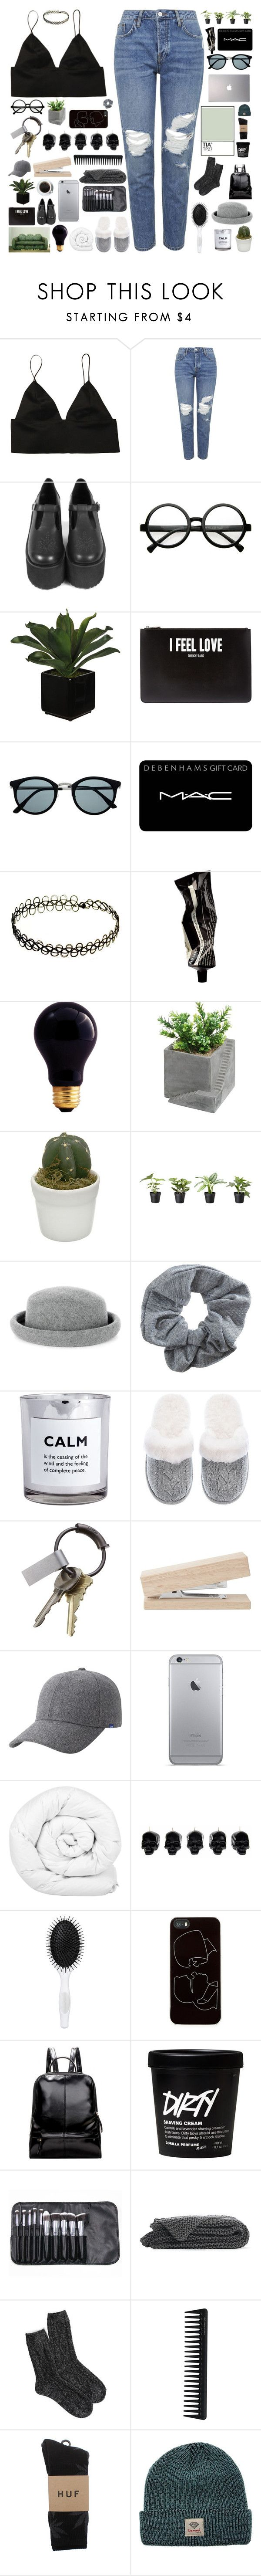 """""""luna"""" by dont-go-to-sleep ❤ liked on Polyvore featuring Topshop, Retrò, Givenchy, MAC Cosmetics, Aesop, Bulbrite, Warehouse, H&M, Victoria's Secret and CB2"""